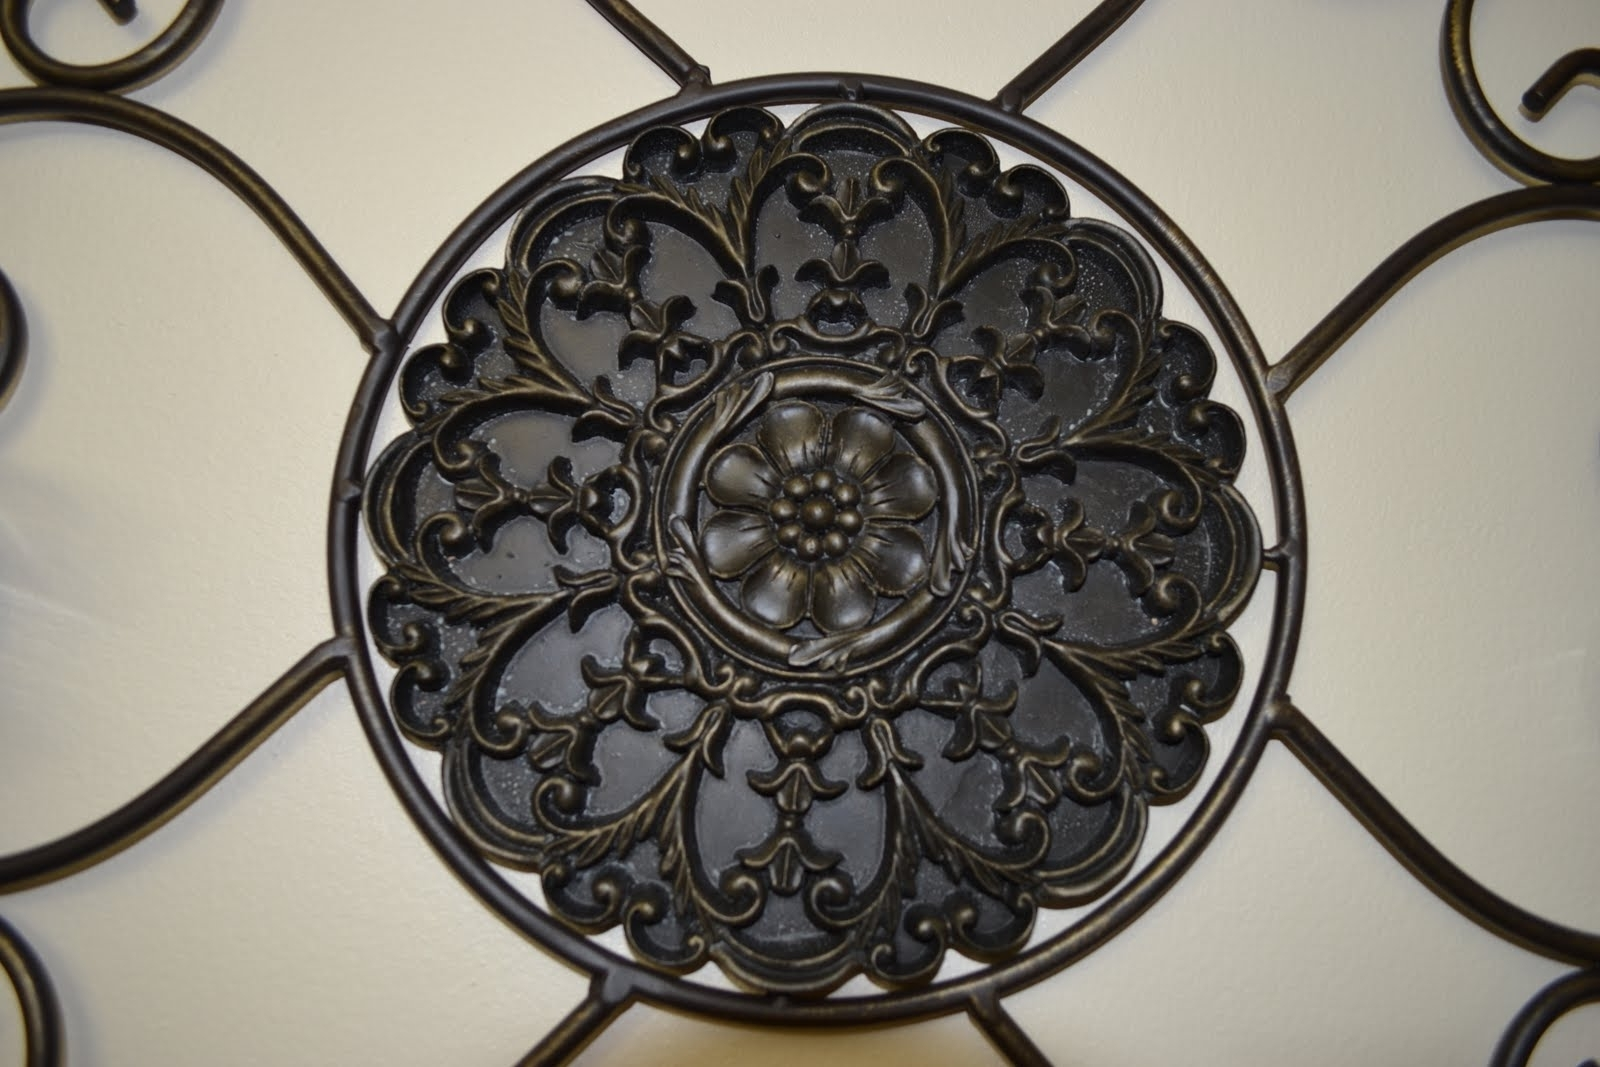 Hobby Lobby Metal Wall Art Throughout Newest Metal Wall Decor Hobby Pic On Hobby Lobby Wall Art – Prix Dalle (View 4 of 15)